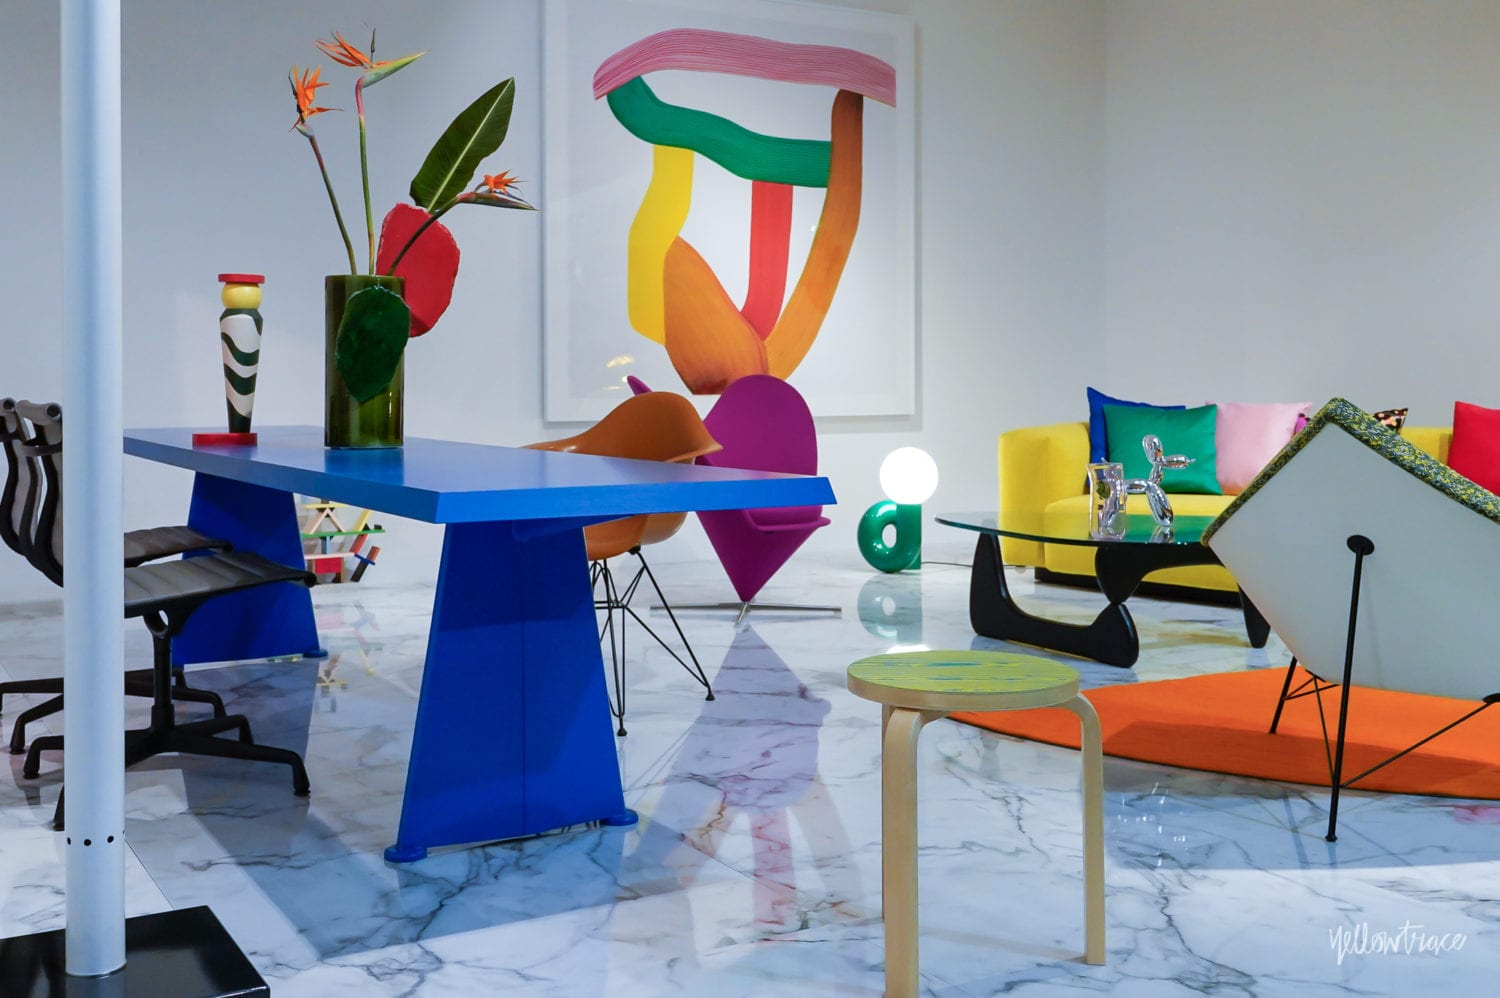 Highlights From Milan Design Week 2019 | #MILANTRACE2019